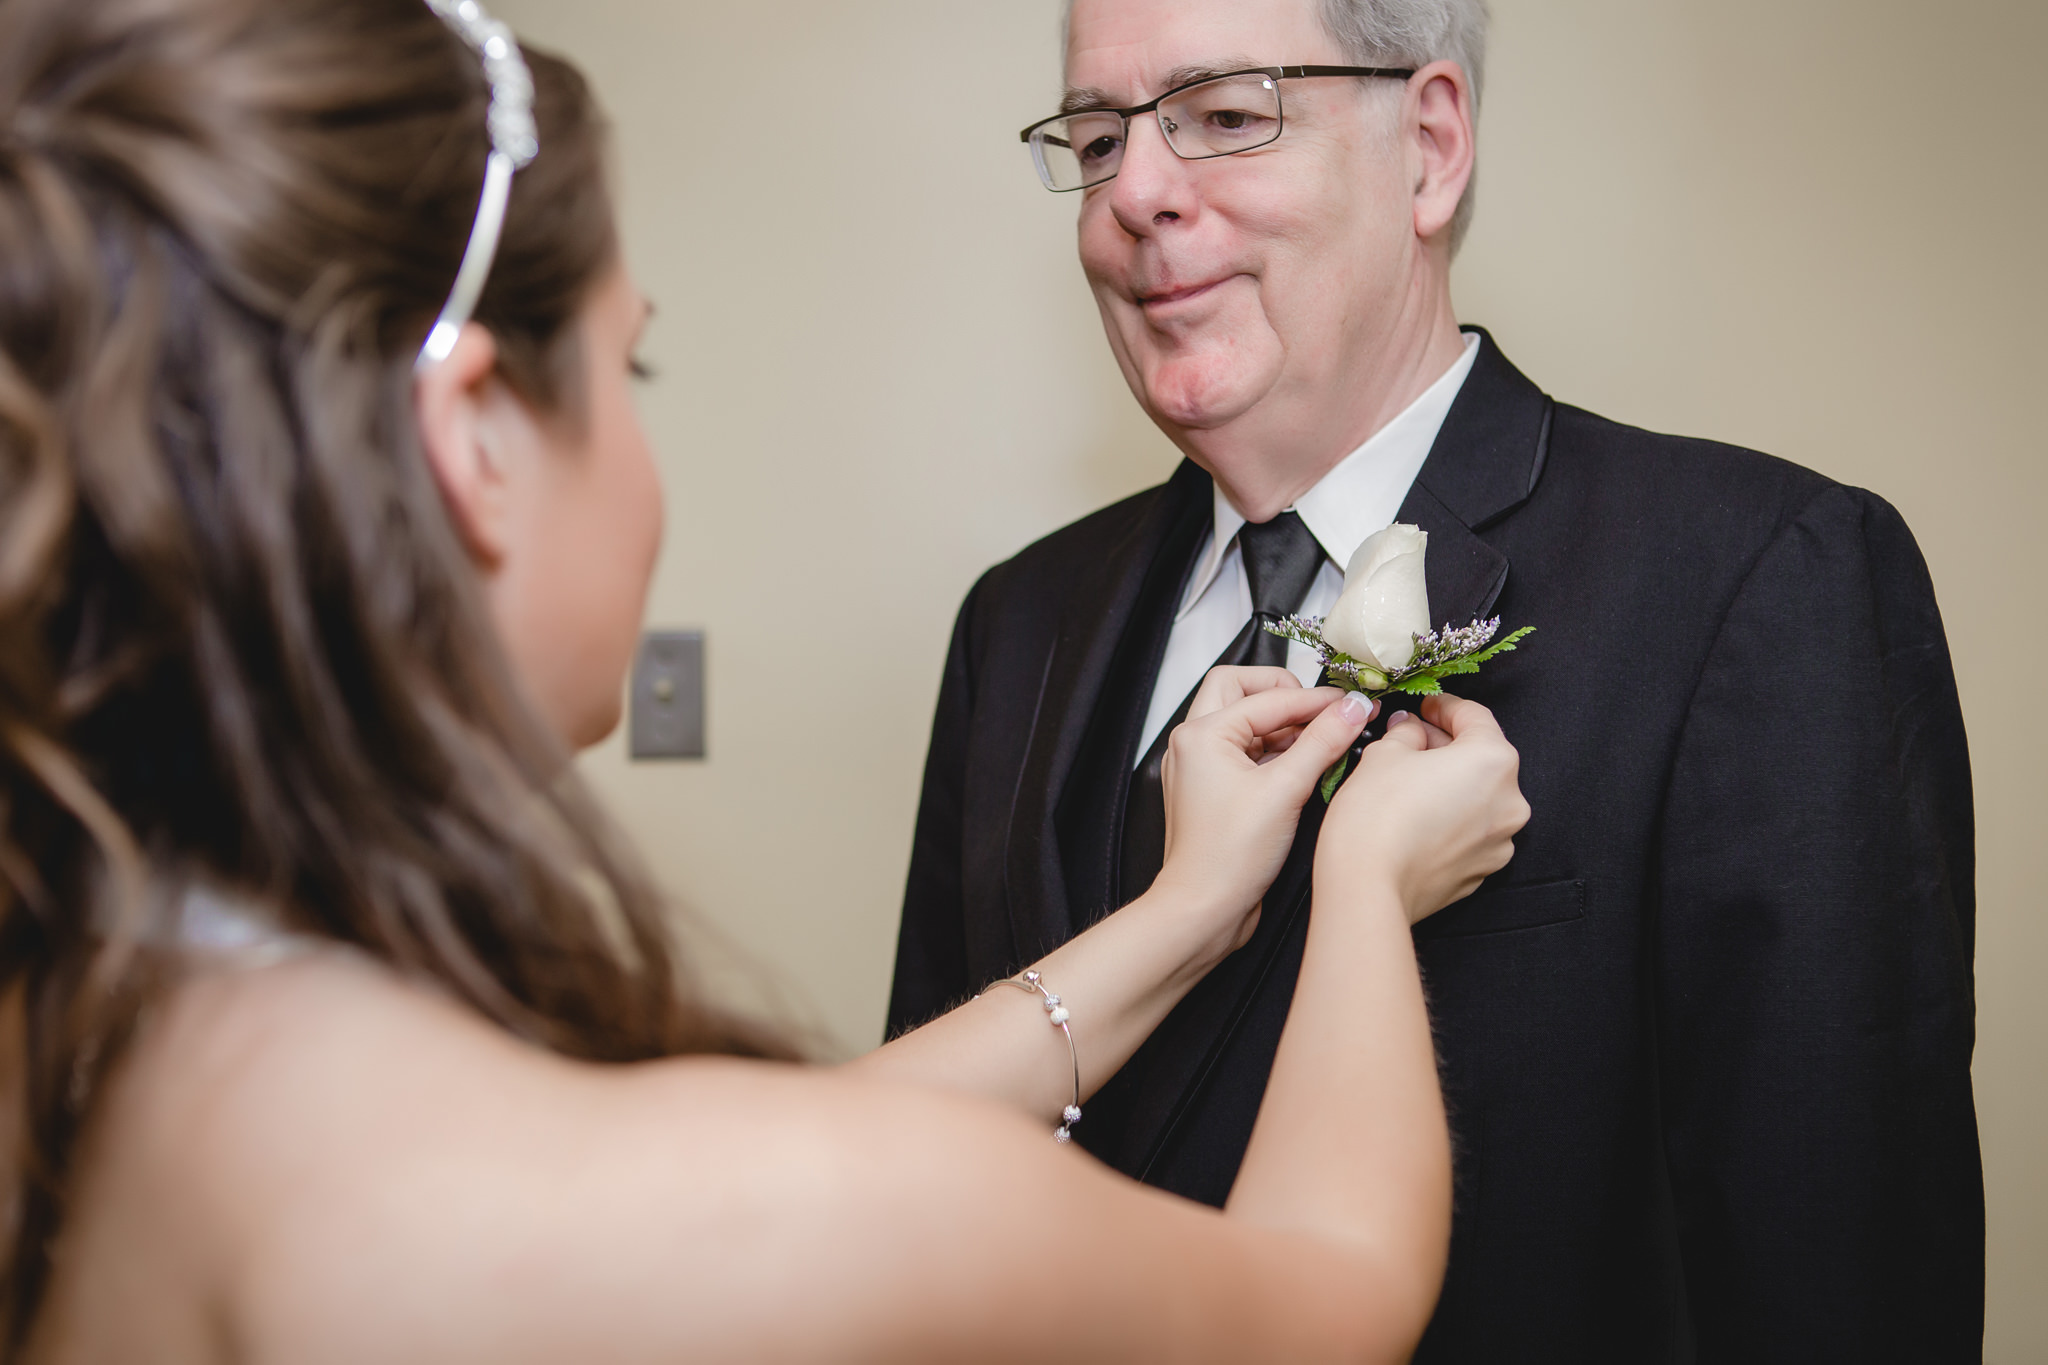 Bride pins boutonniere on her father's lapel before her wedding ceremony